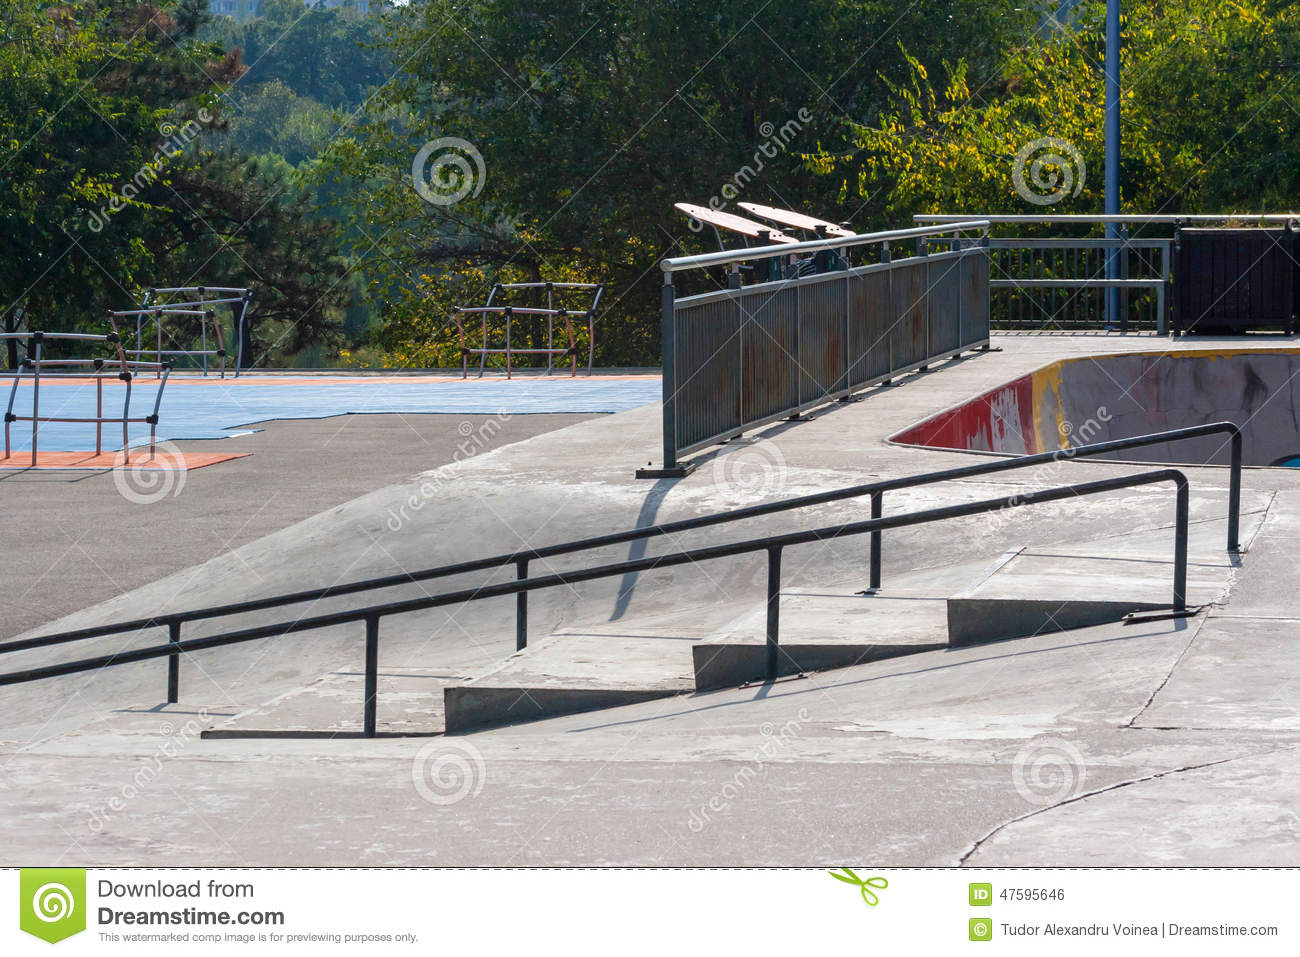 Empty skatepark at noon with ramps and grind rails.